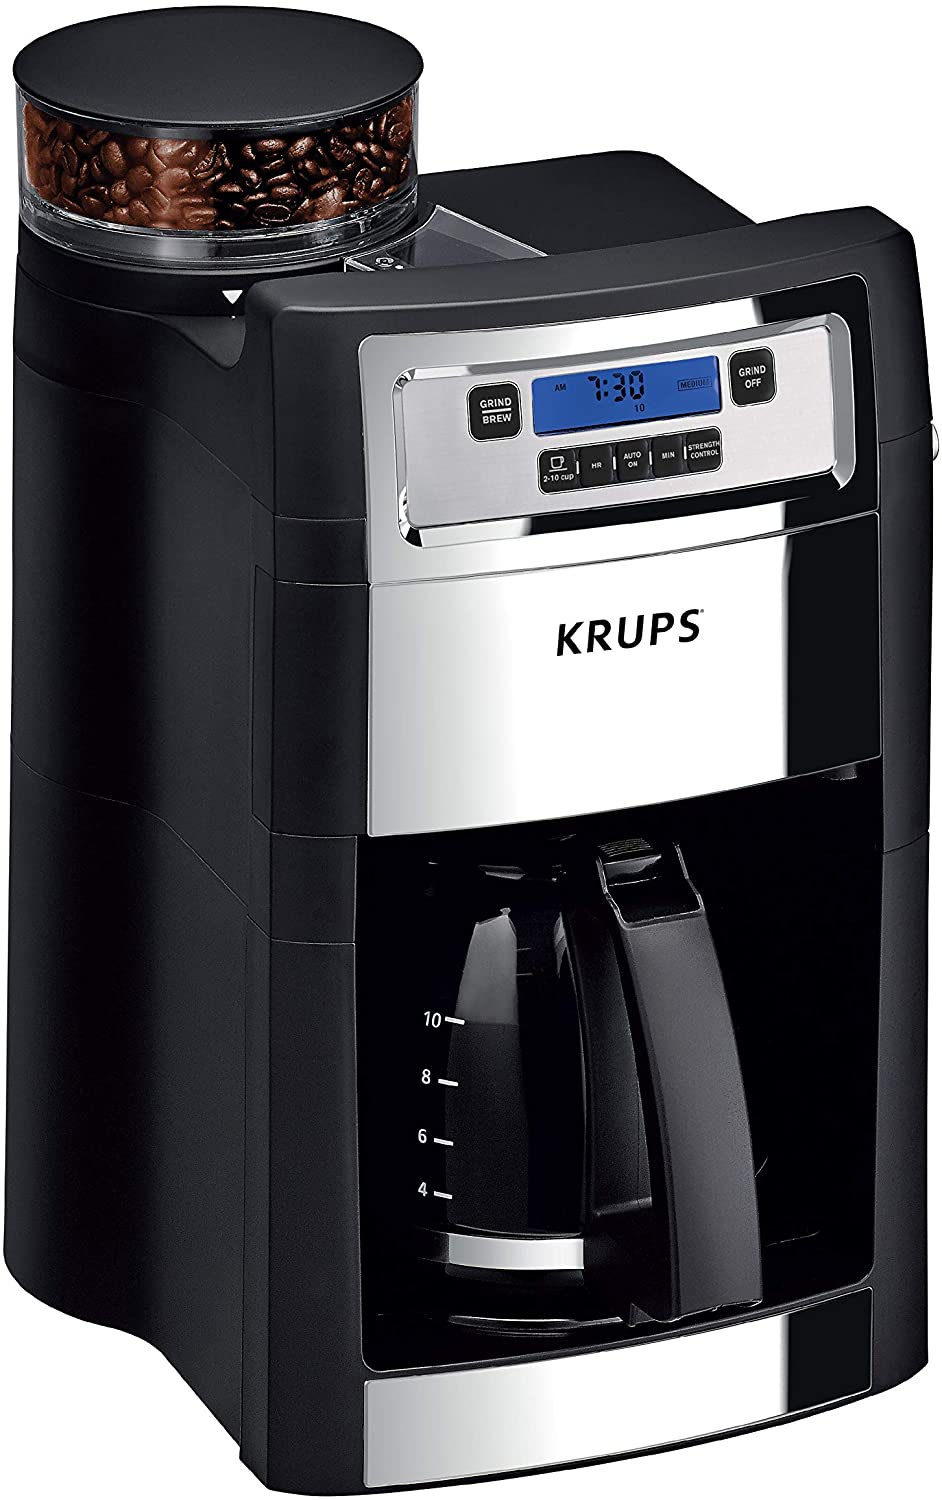 KRUPS KM785D50 Grind and Brew Auto-start Coffee Maker